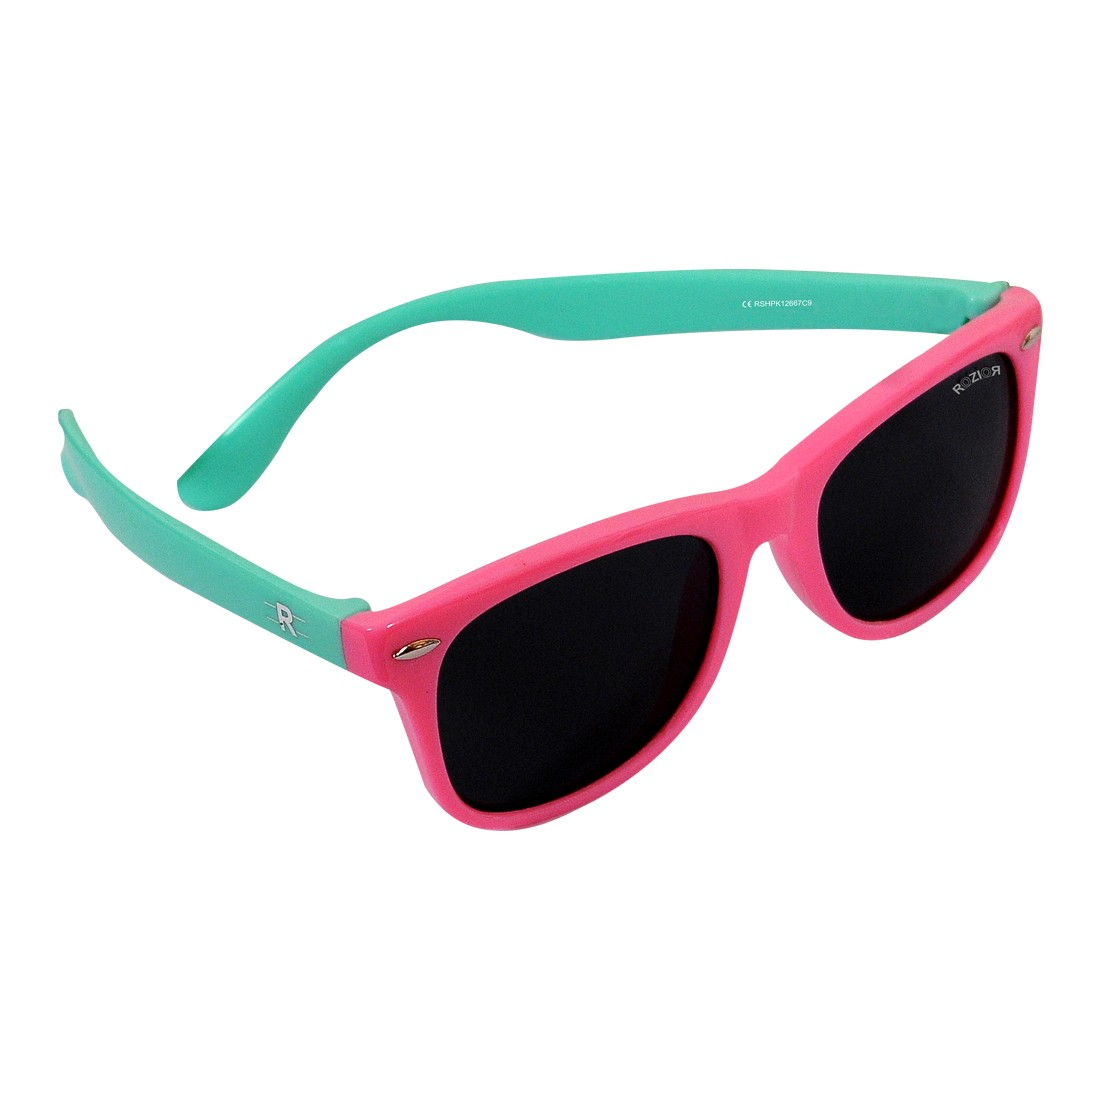 ROZIOR Kids Sunglass with UV Protection Smoke Lens with Pink Frame, MODEL: RSHPK12667C9